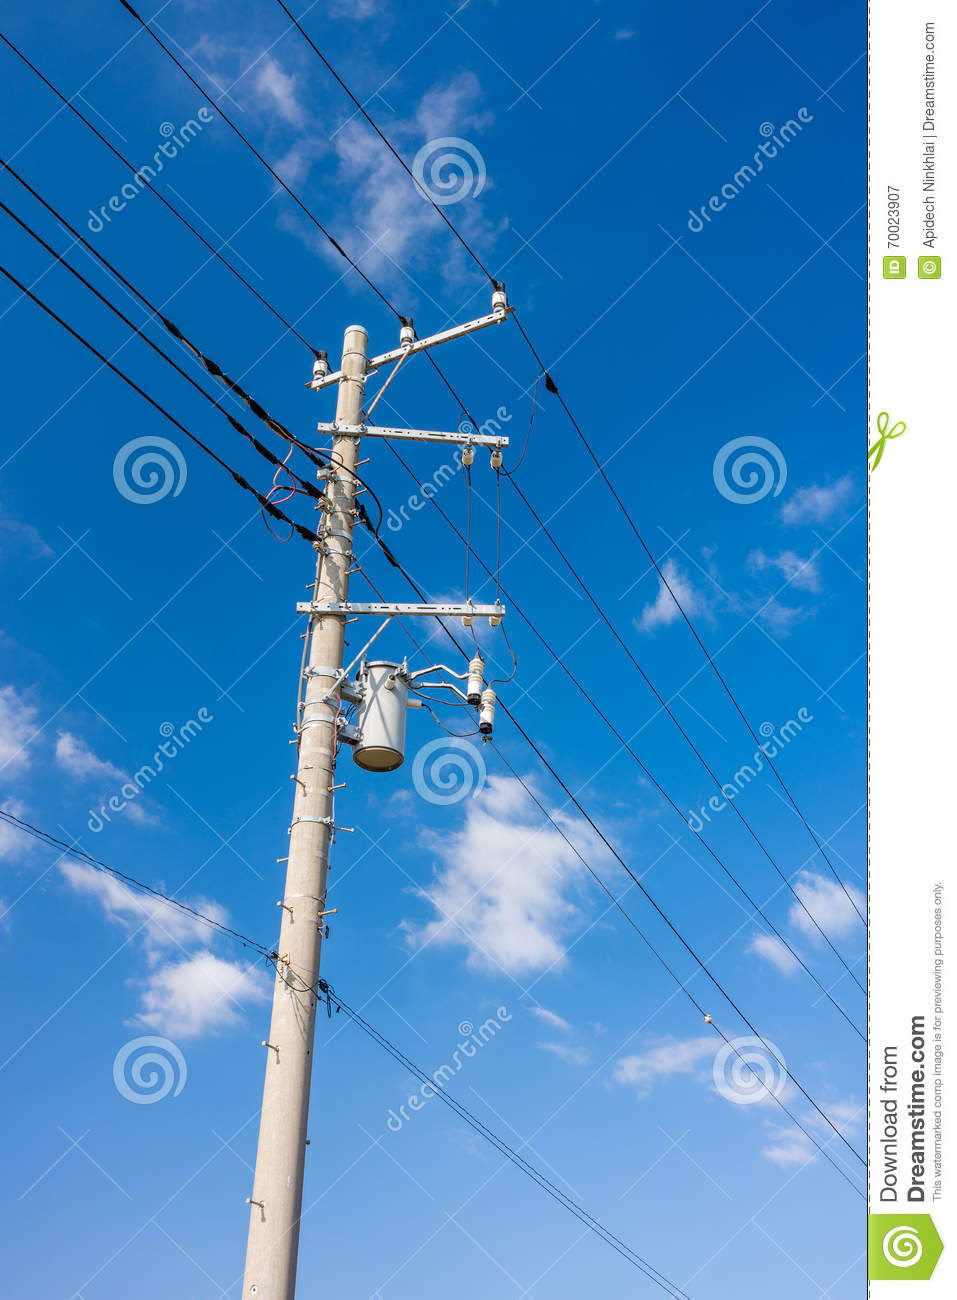 Electrical power line cables and concrete pole with transformer